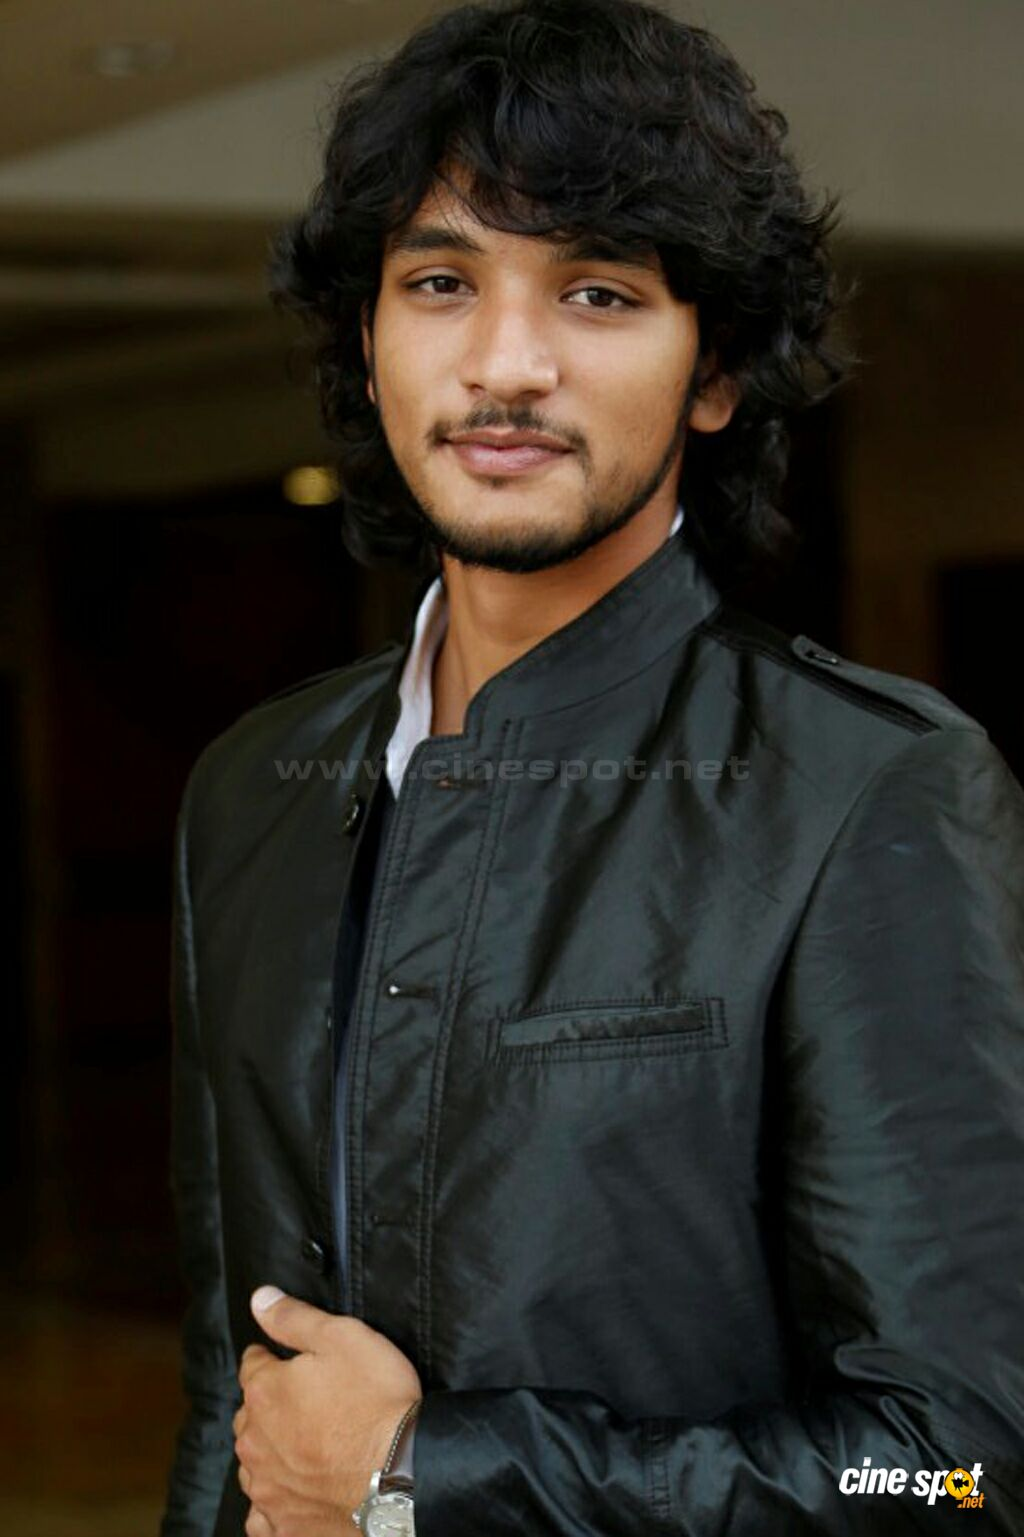 gautham karthik movie list